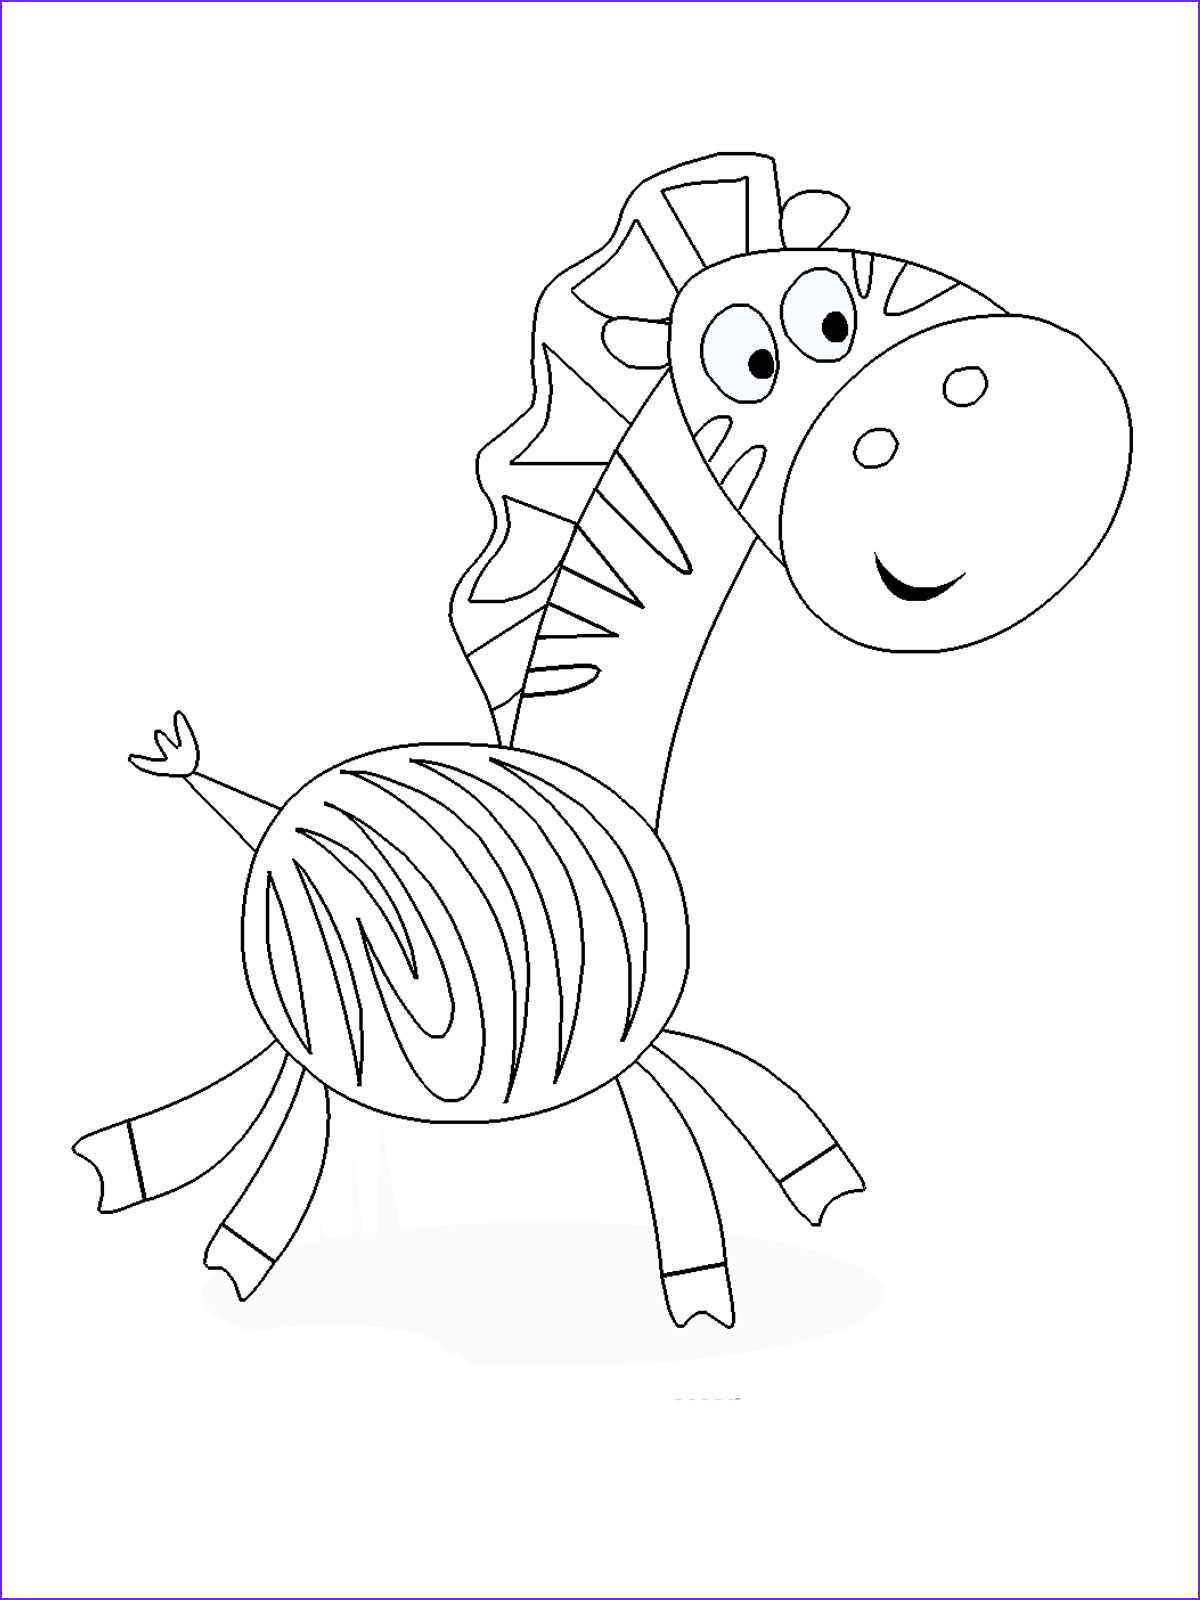 Coloring Page Children Inspirational Image Printable Coloring Pages for Kids